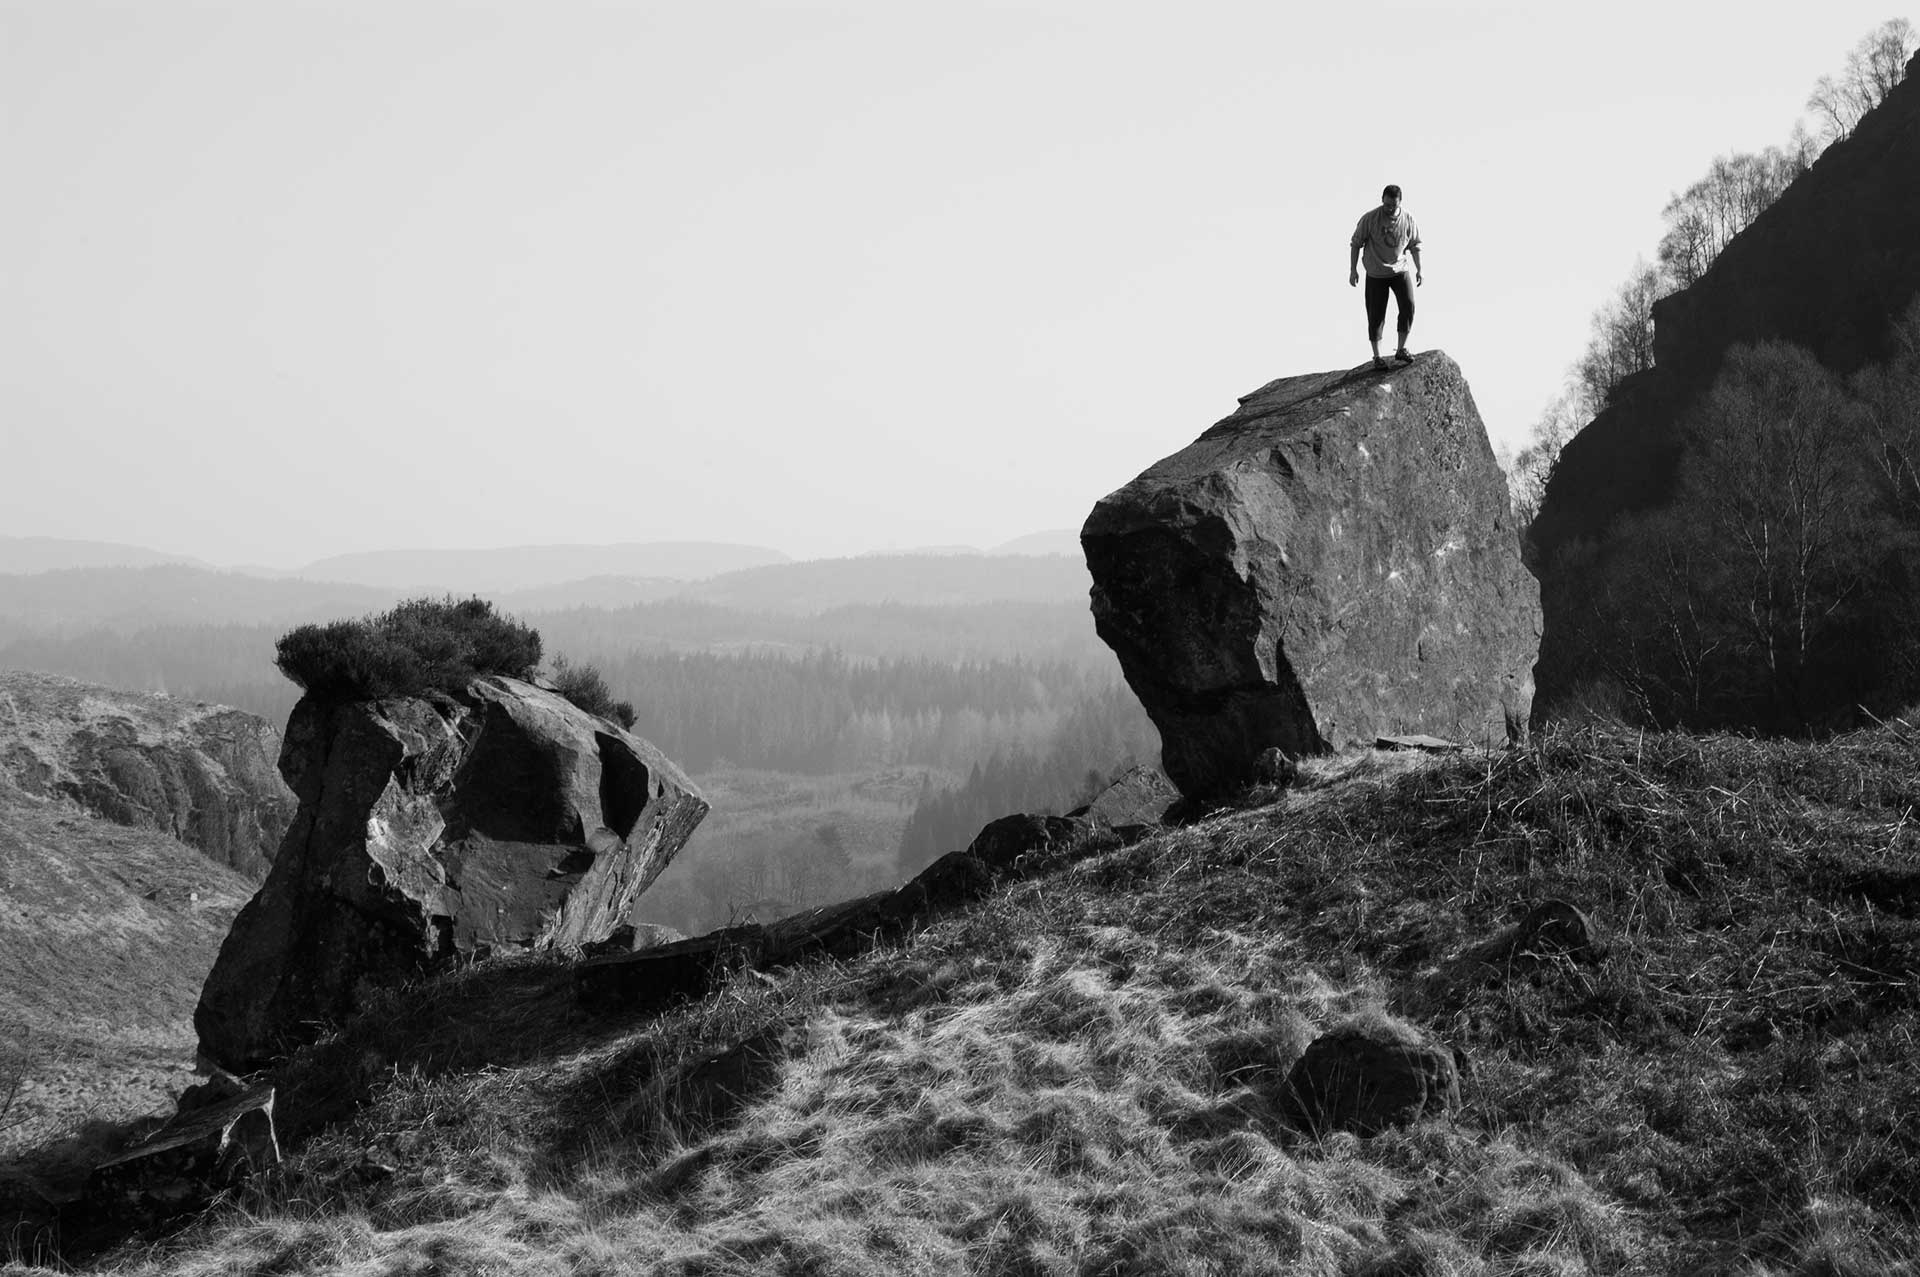 John atop the Jawa boulder at Loch Katrine, also the cover photo for our book Stone Country